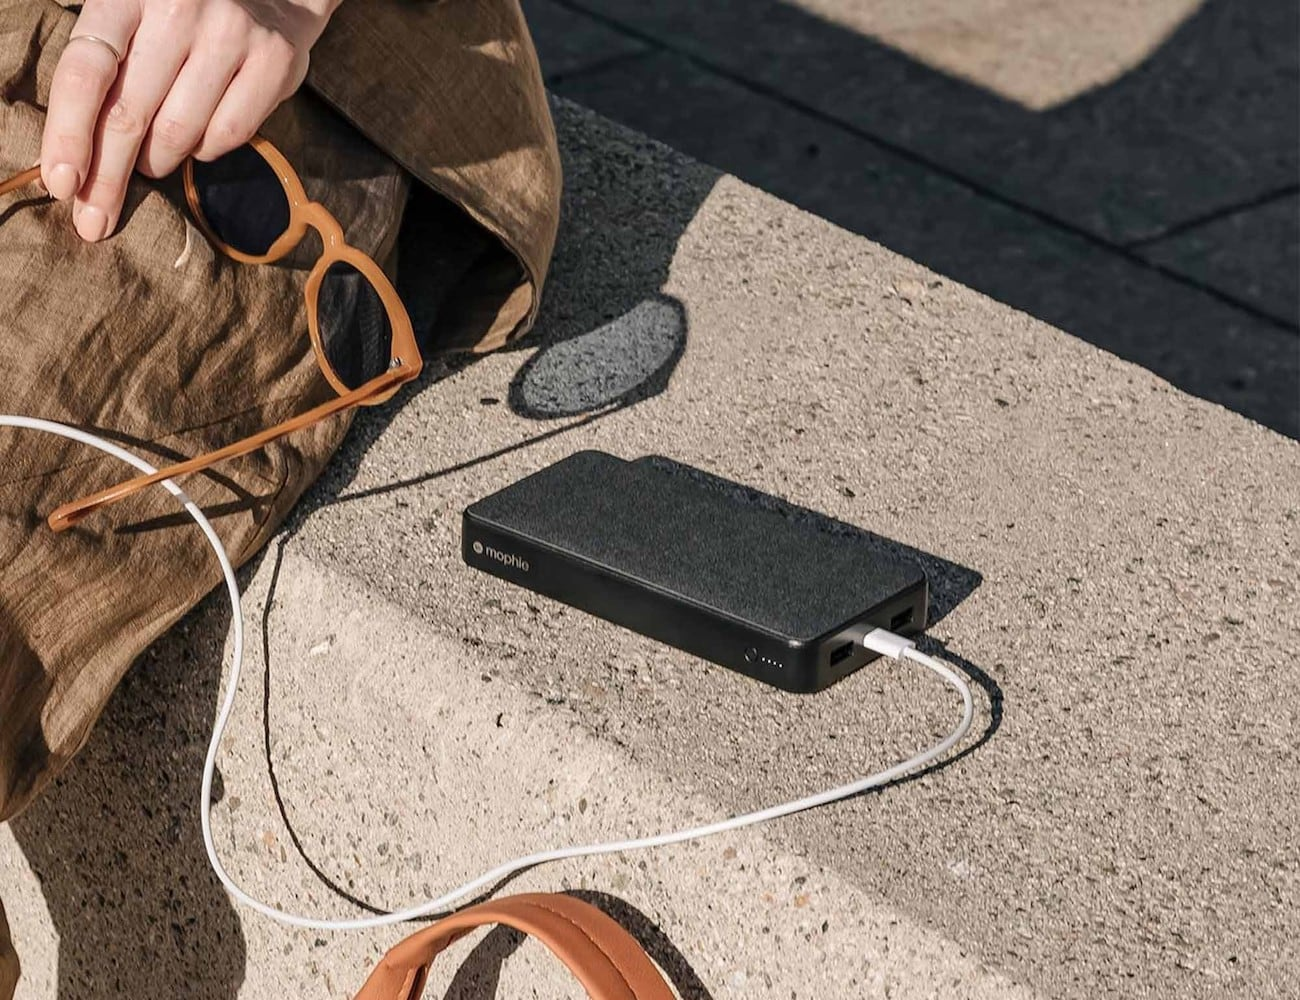 mophie powerstation mini 5,000mAh Fabric Portable Battery is a stylish pocket-sized charger